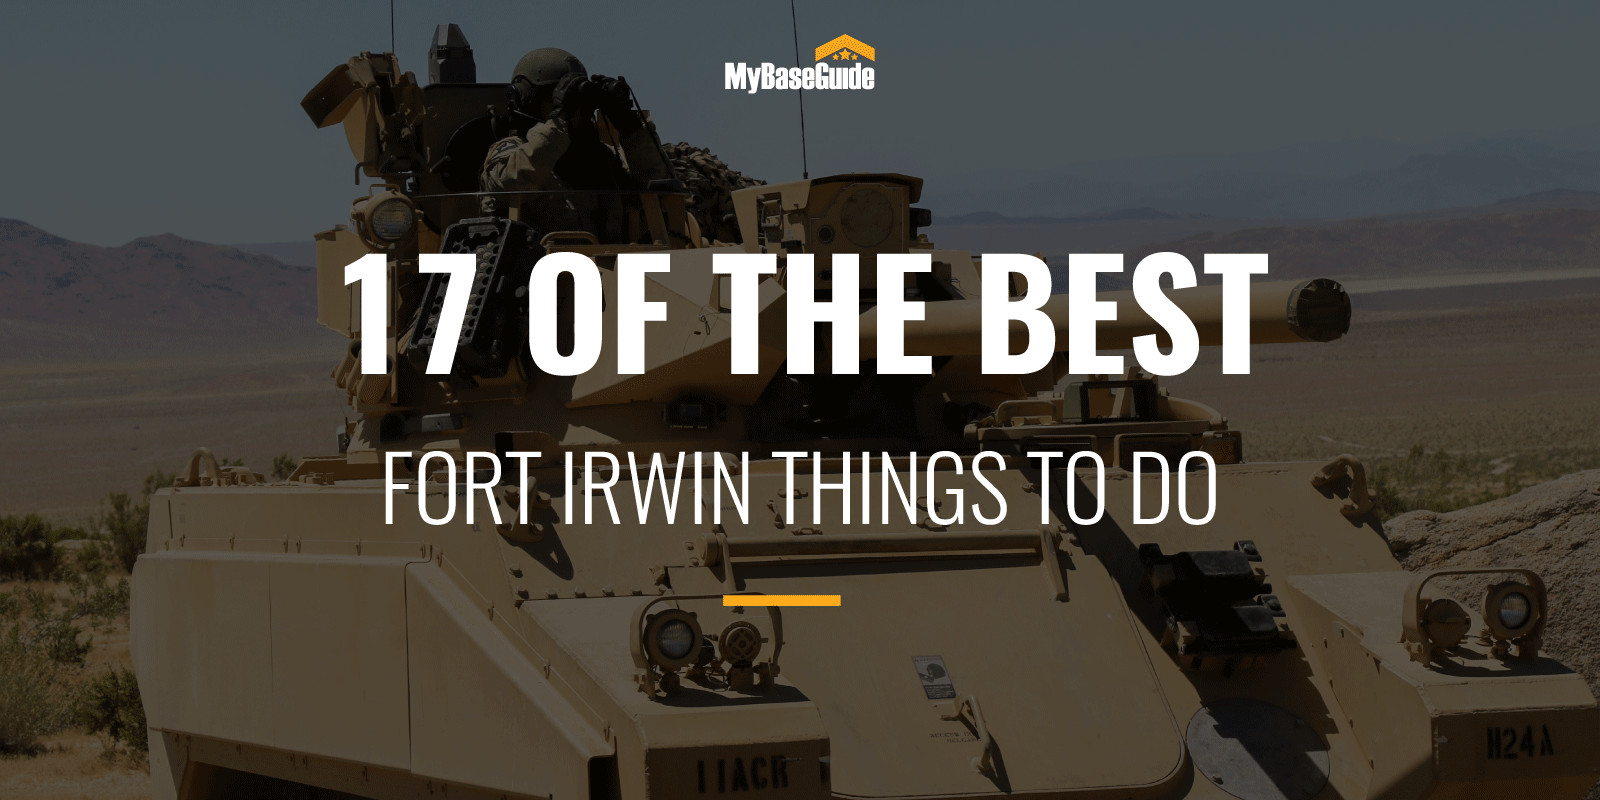 17 Of the Best Fort Irwin Things to Do